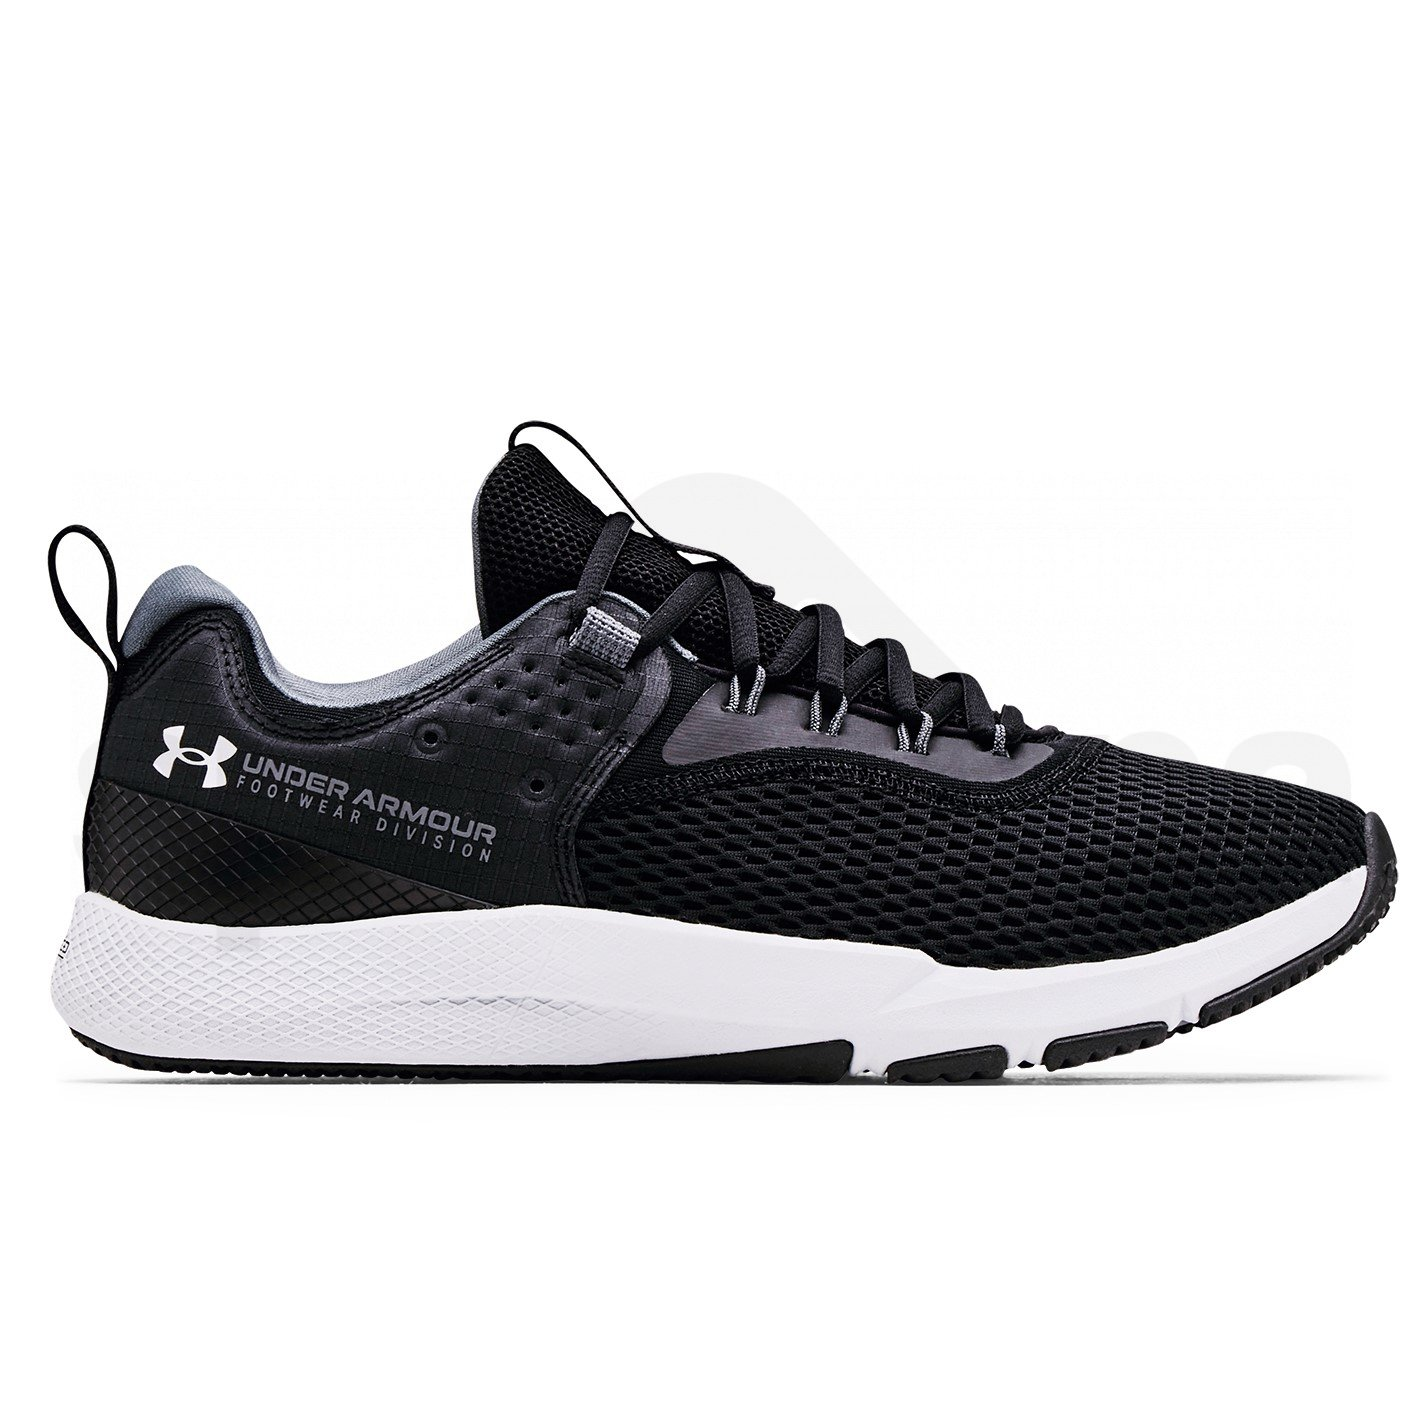 3024277-001_Under Armour Charged Focus M